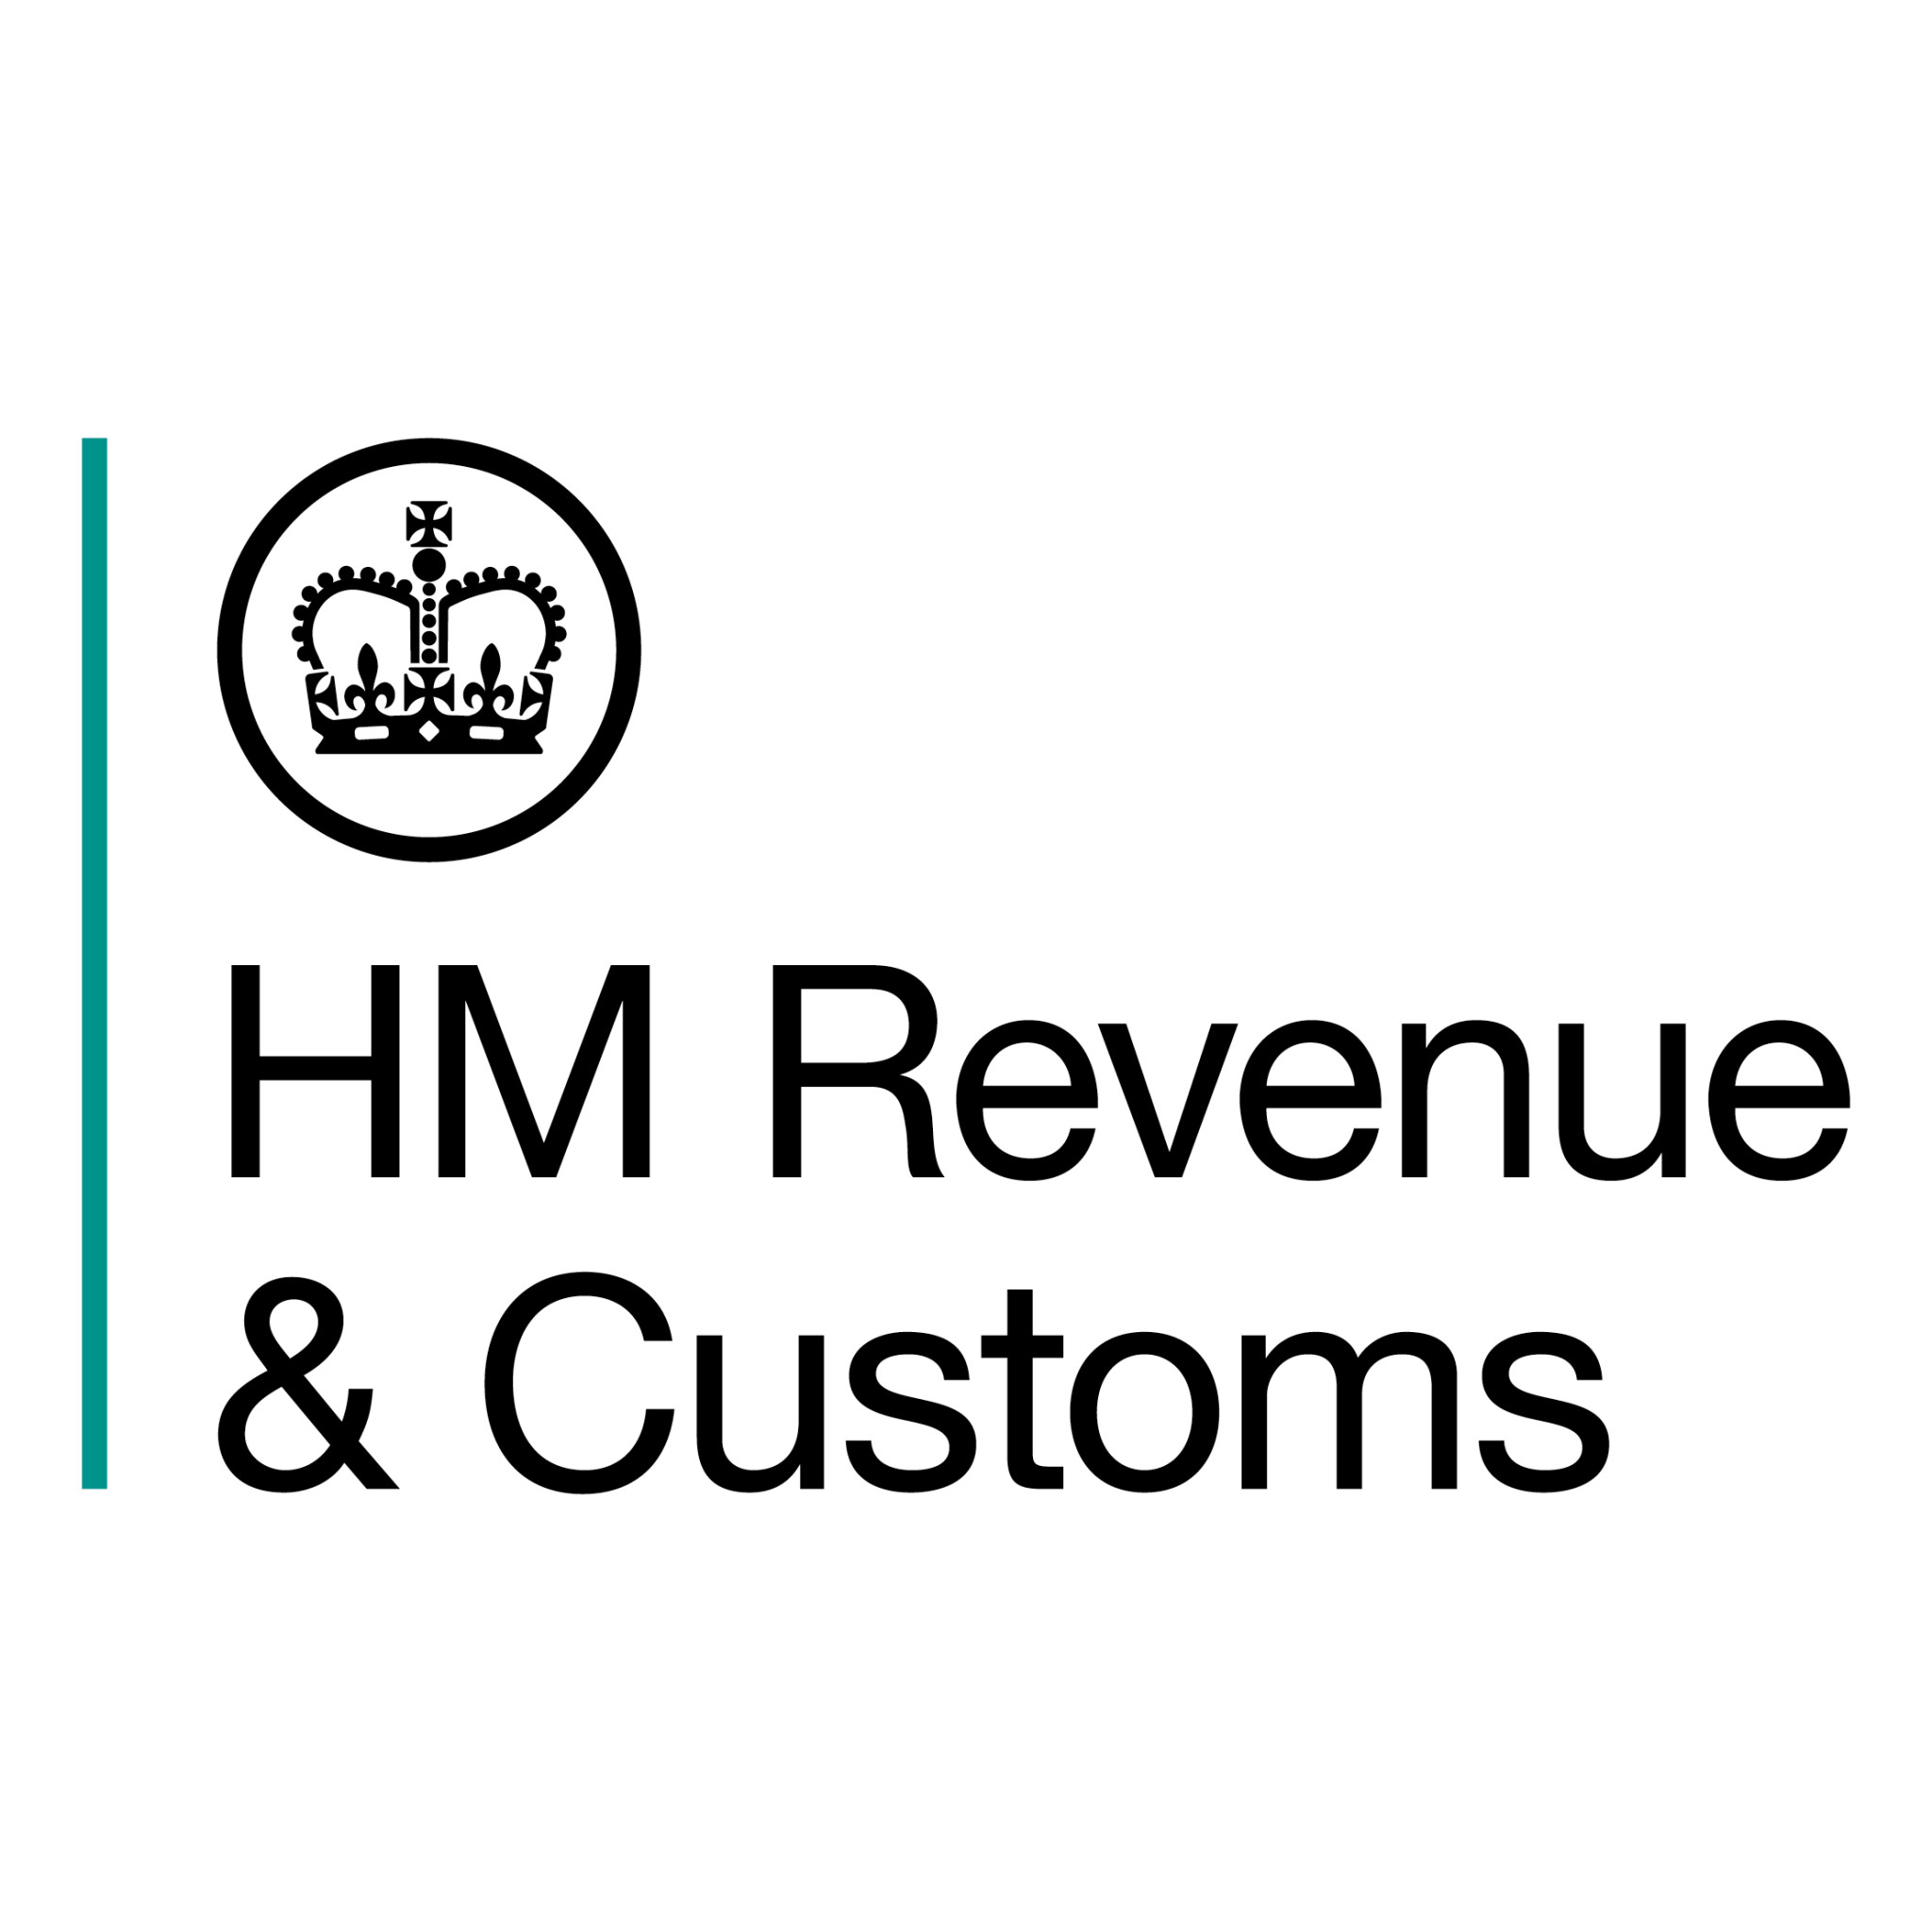 The new tax year is here. For the latest information on finalising the 2020-21 tax year and key changes affecting payroll for 2021-22, join HMRC's live webinars.